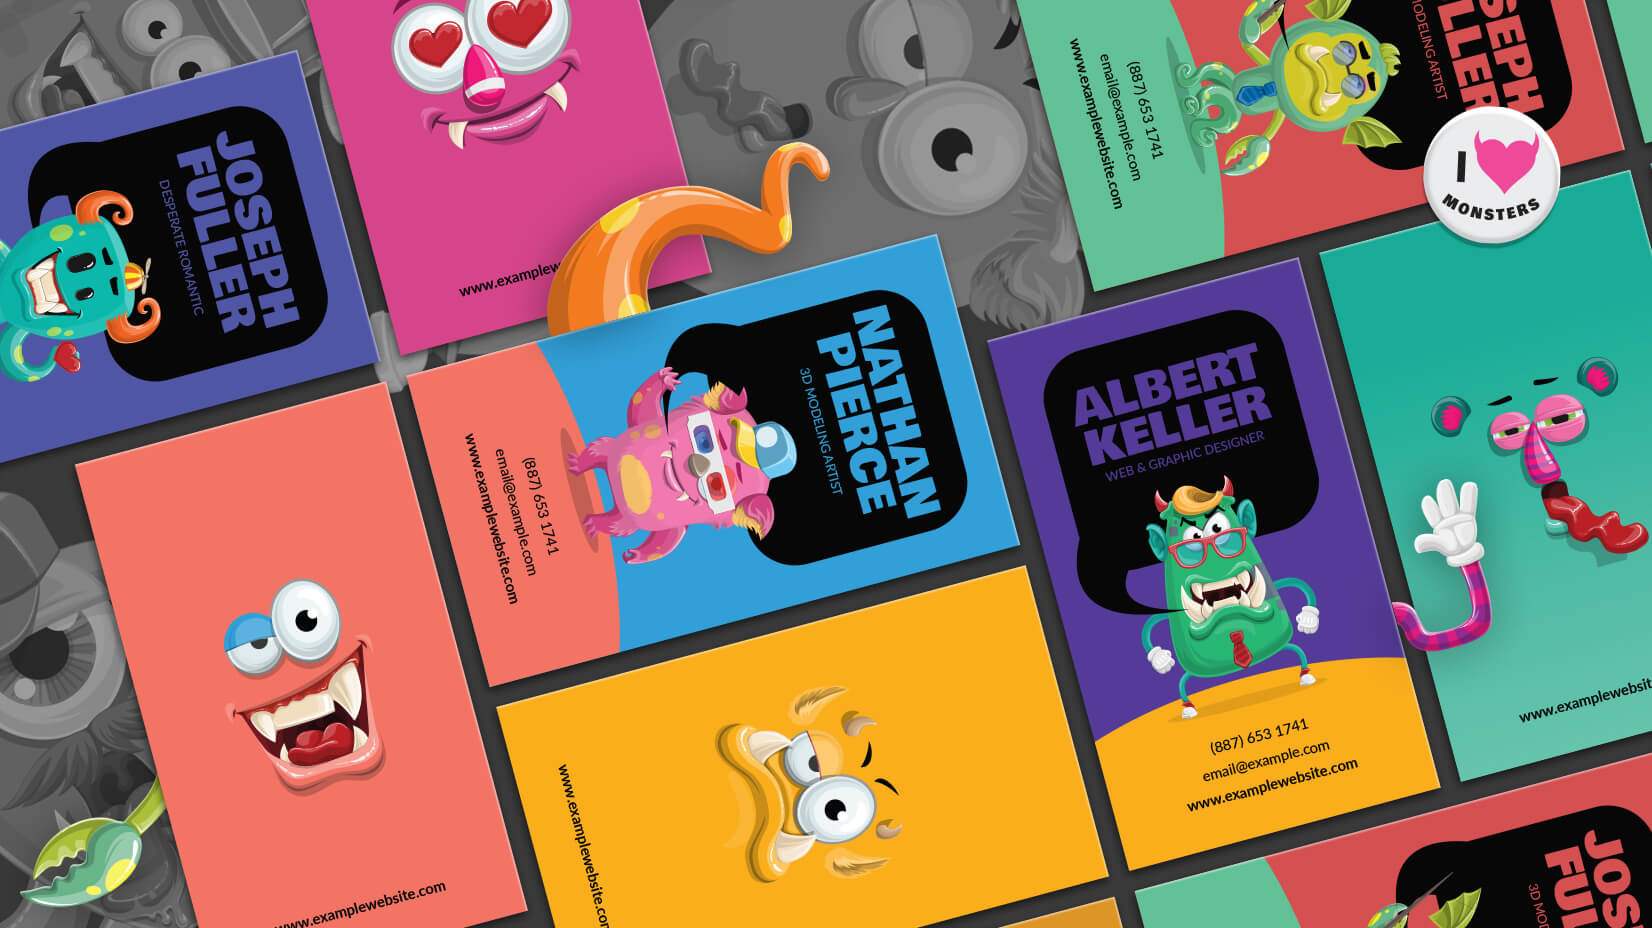 Monster business card template in illustrator tutorial freebie cheaphphosting Gallery